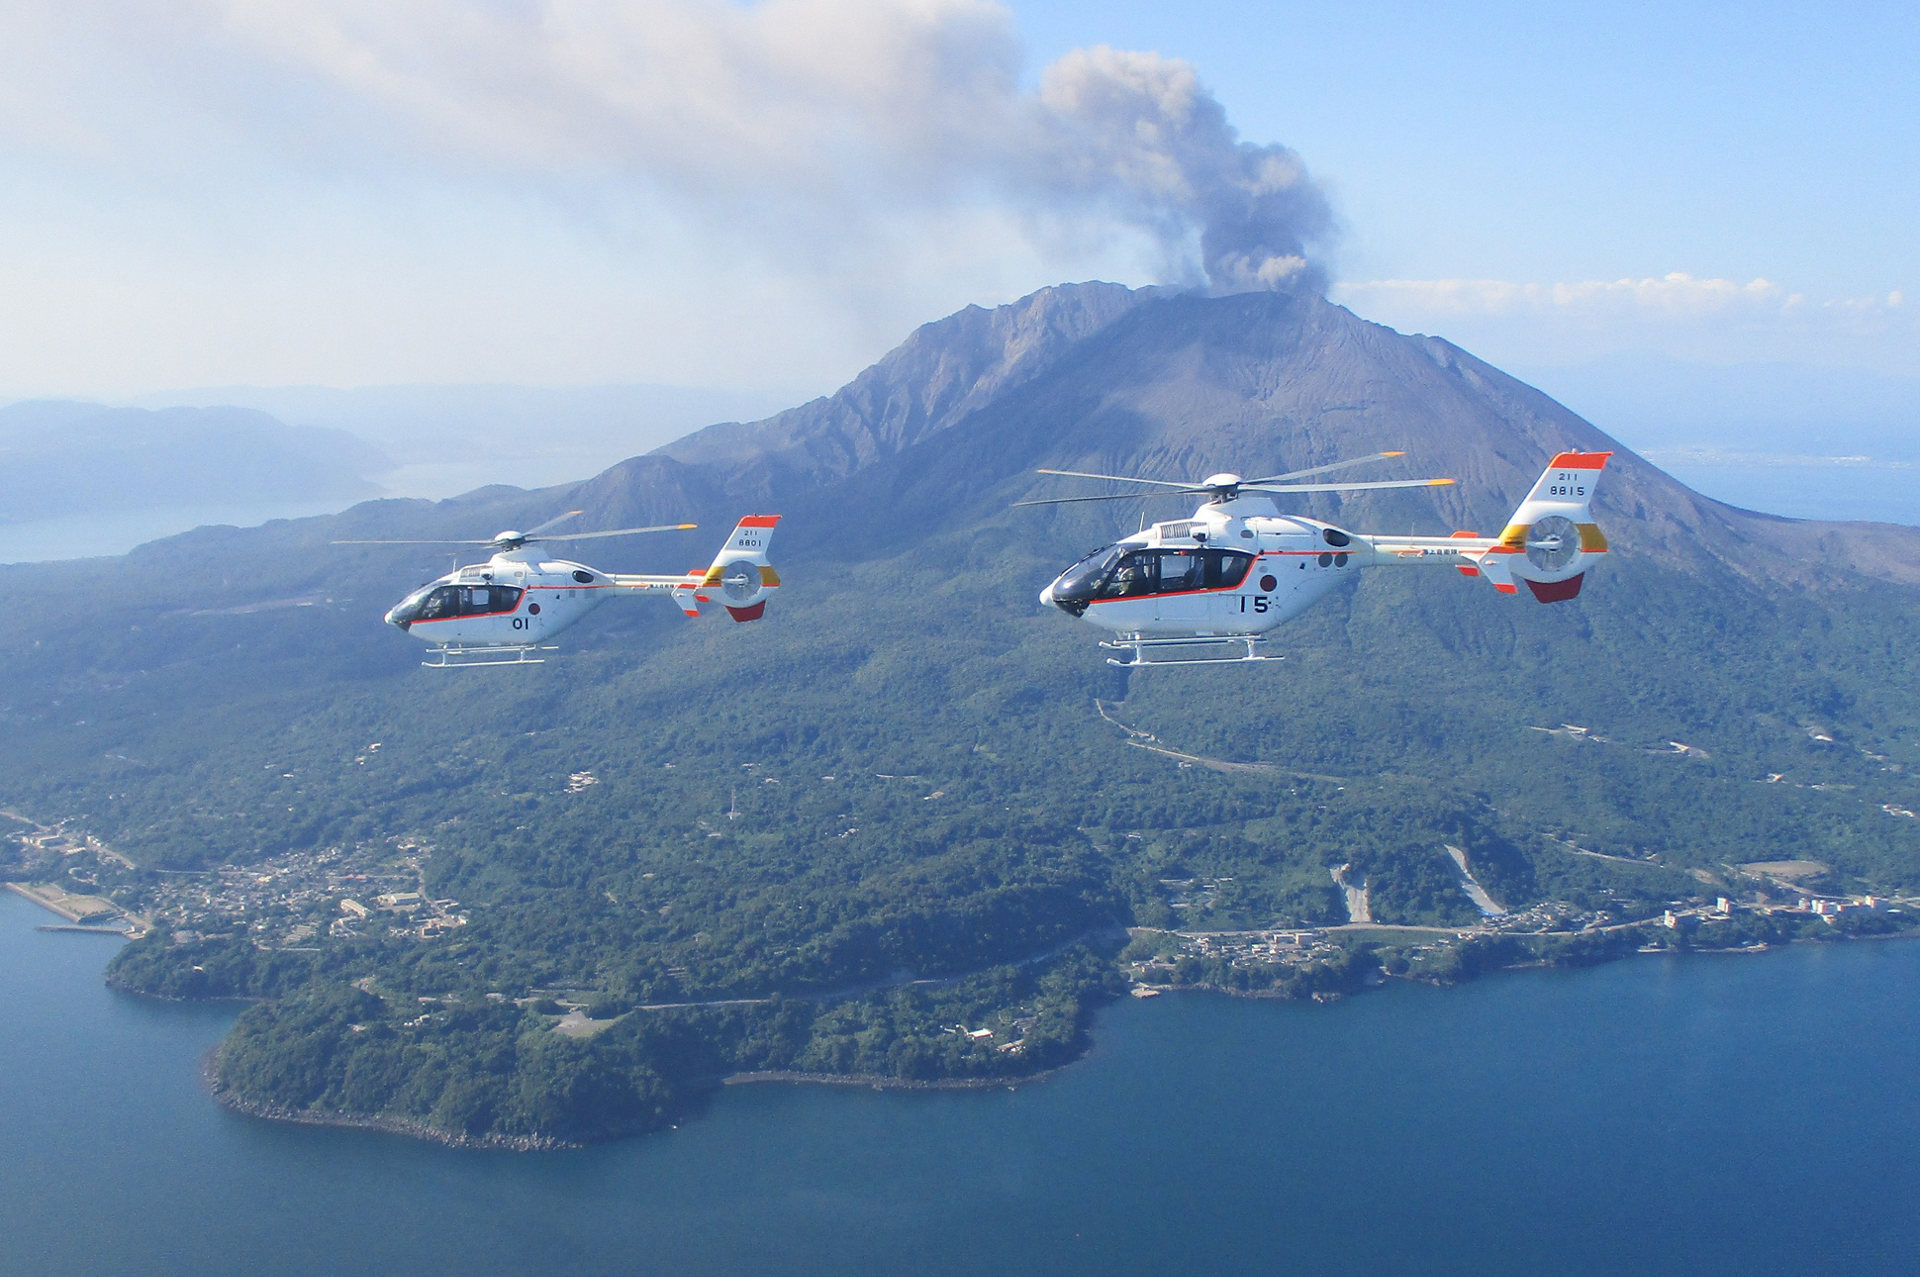 Two H135s operated by the Japan Maritime Self-Defense Force (JMSDF) fly near a volcano.